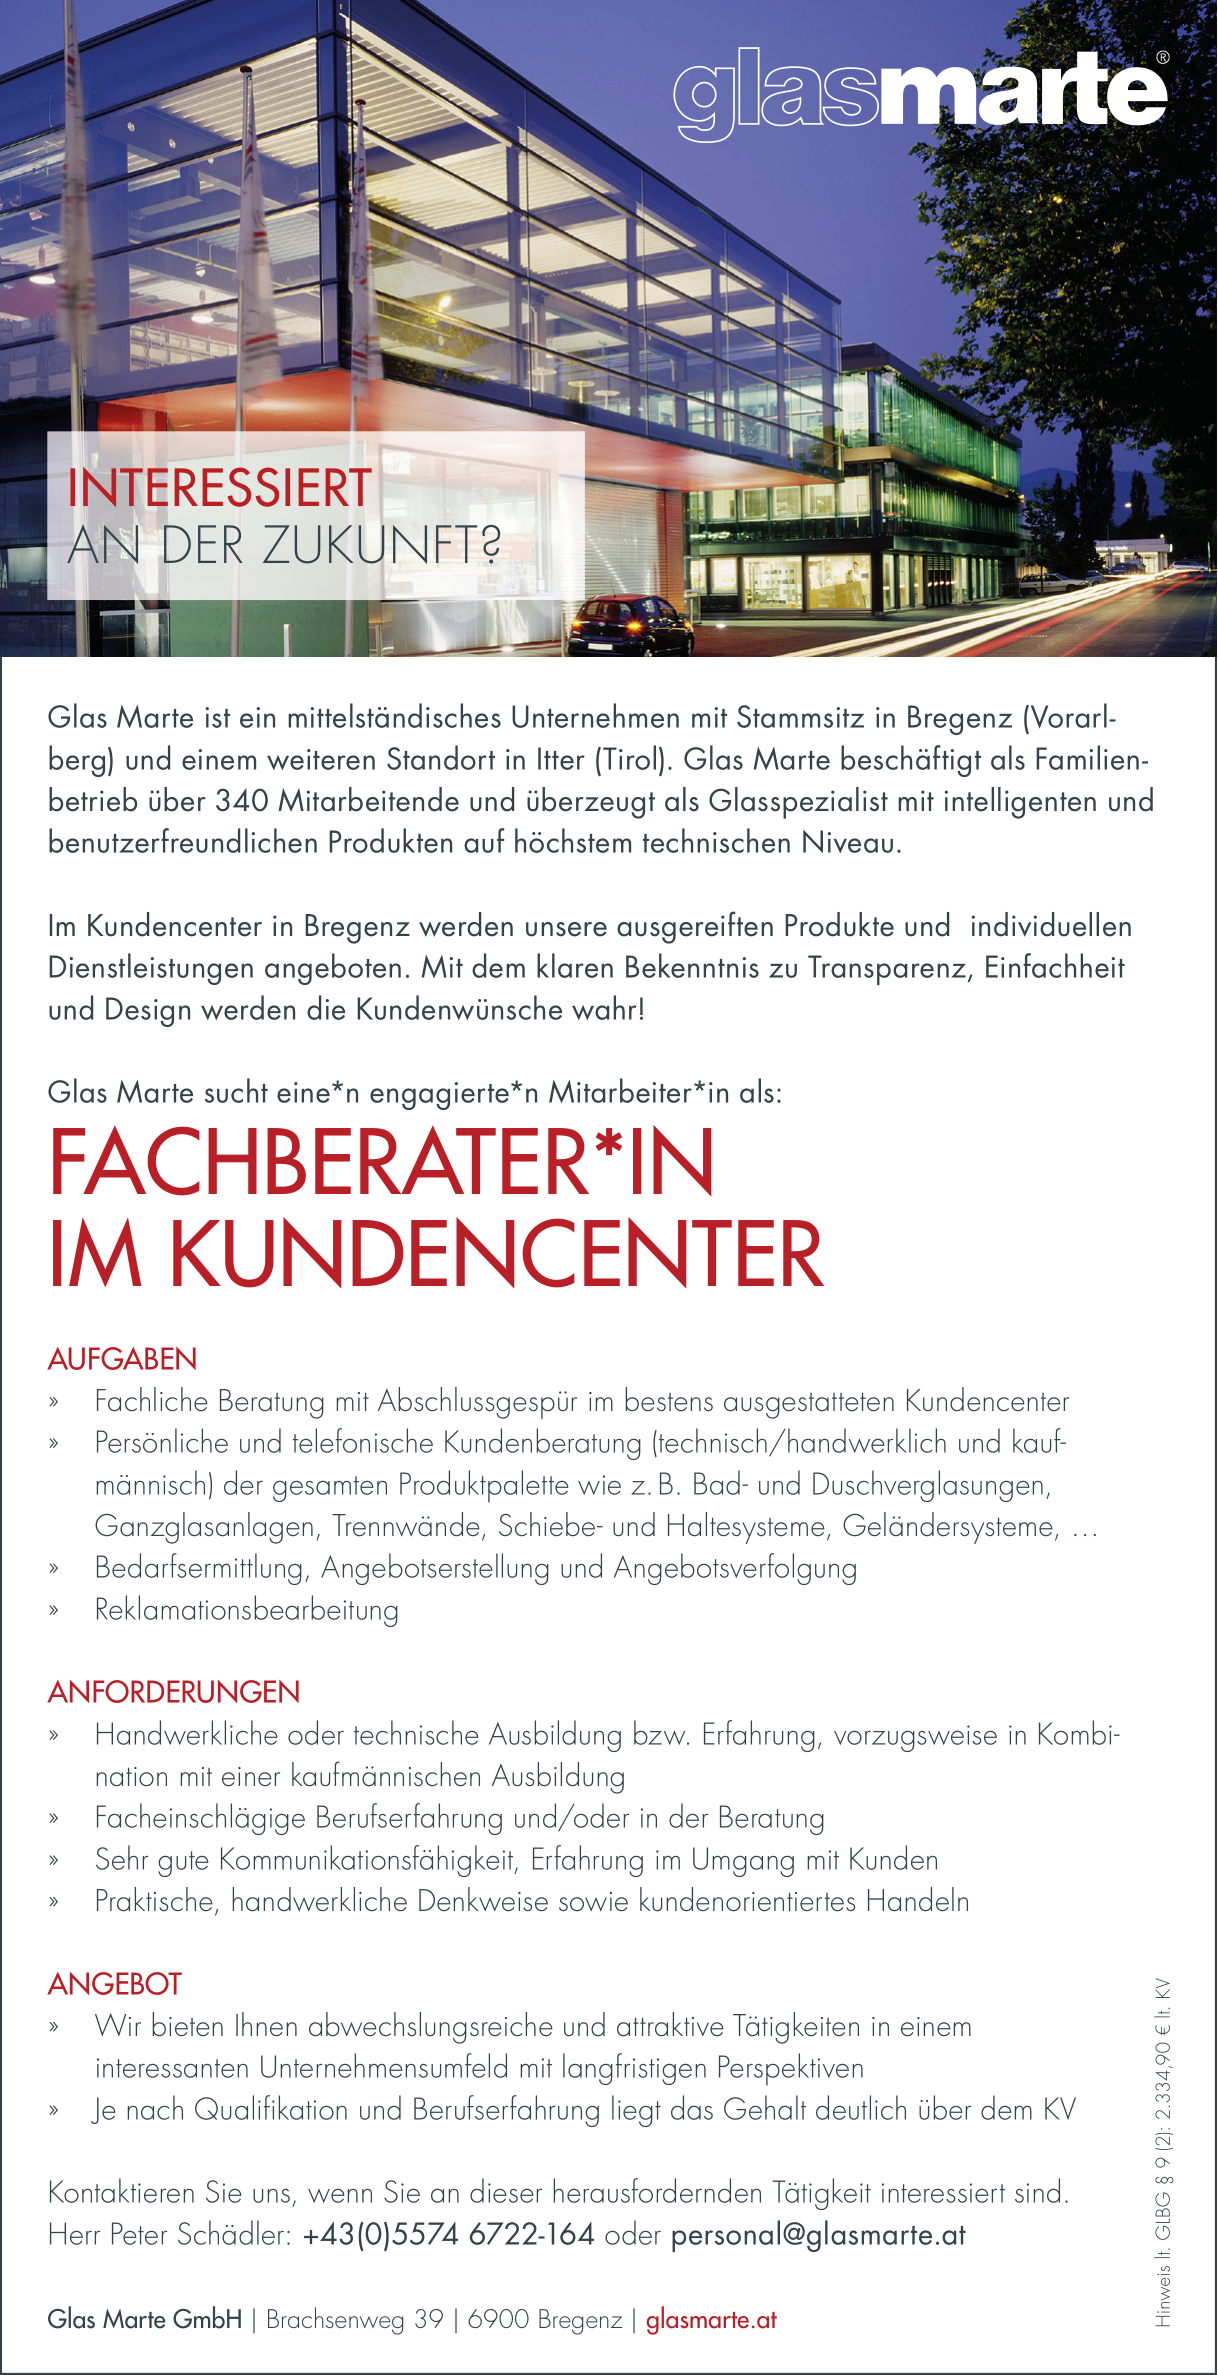 Fachberater*in / Kundencenter